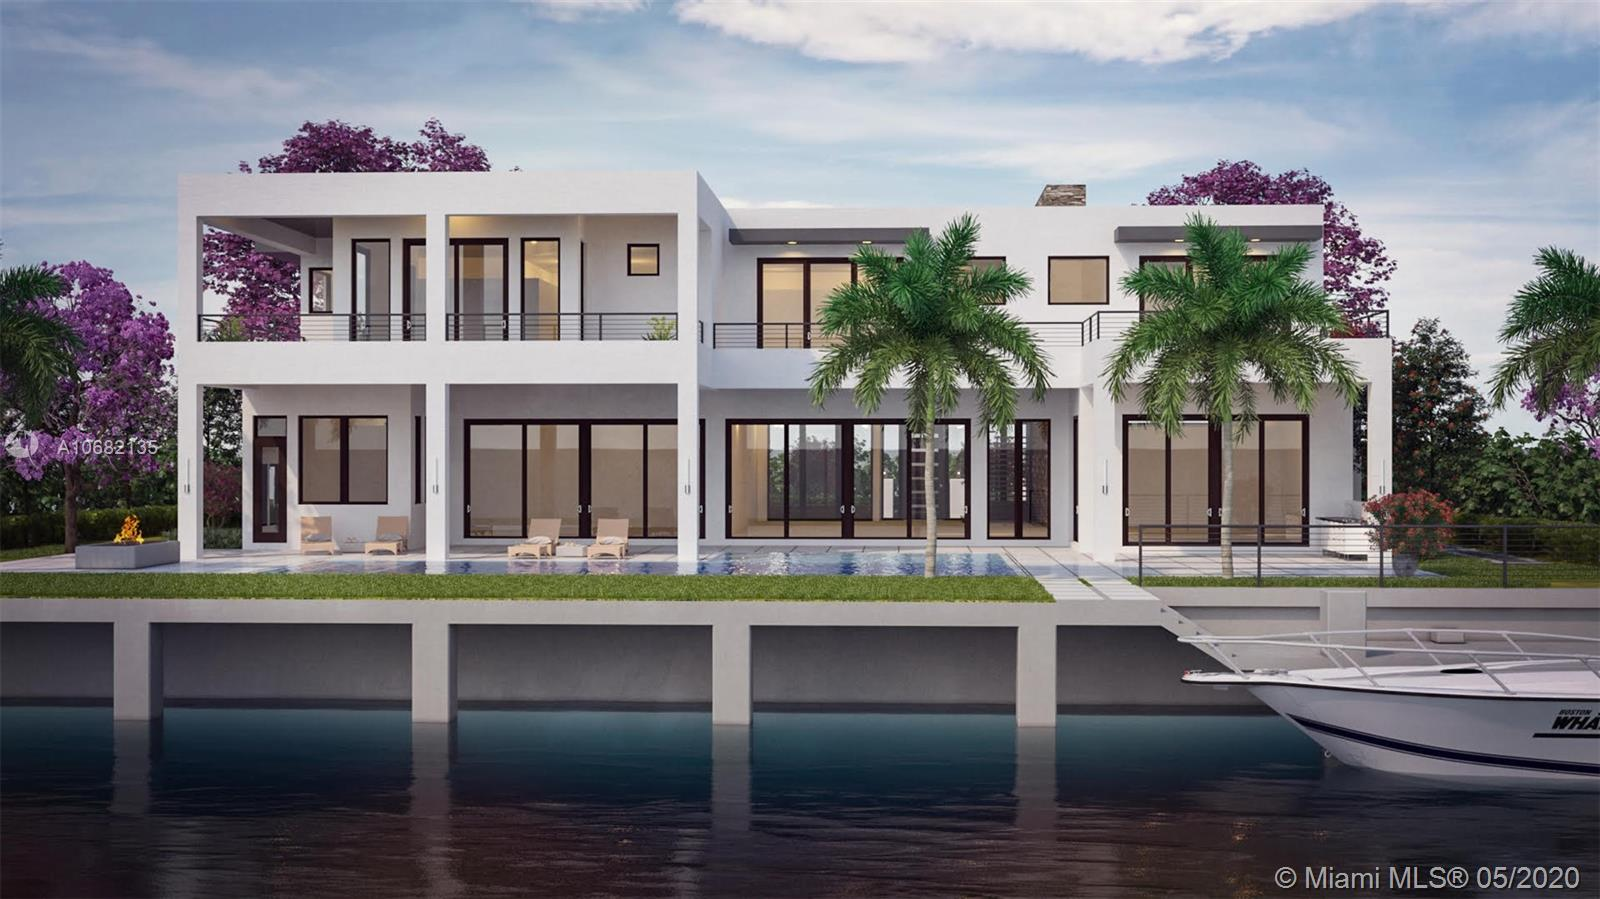 Extraordinary new waterfront home located across from the prestigious Coral Ridge Country Club. A modern architectural masterpiece featuring over 6,700 square feet of living space on a 14,553 square foot lot with a 125 feet of deep-water dockage. Completion Summer of 2020.